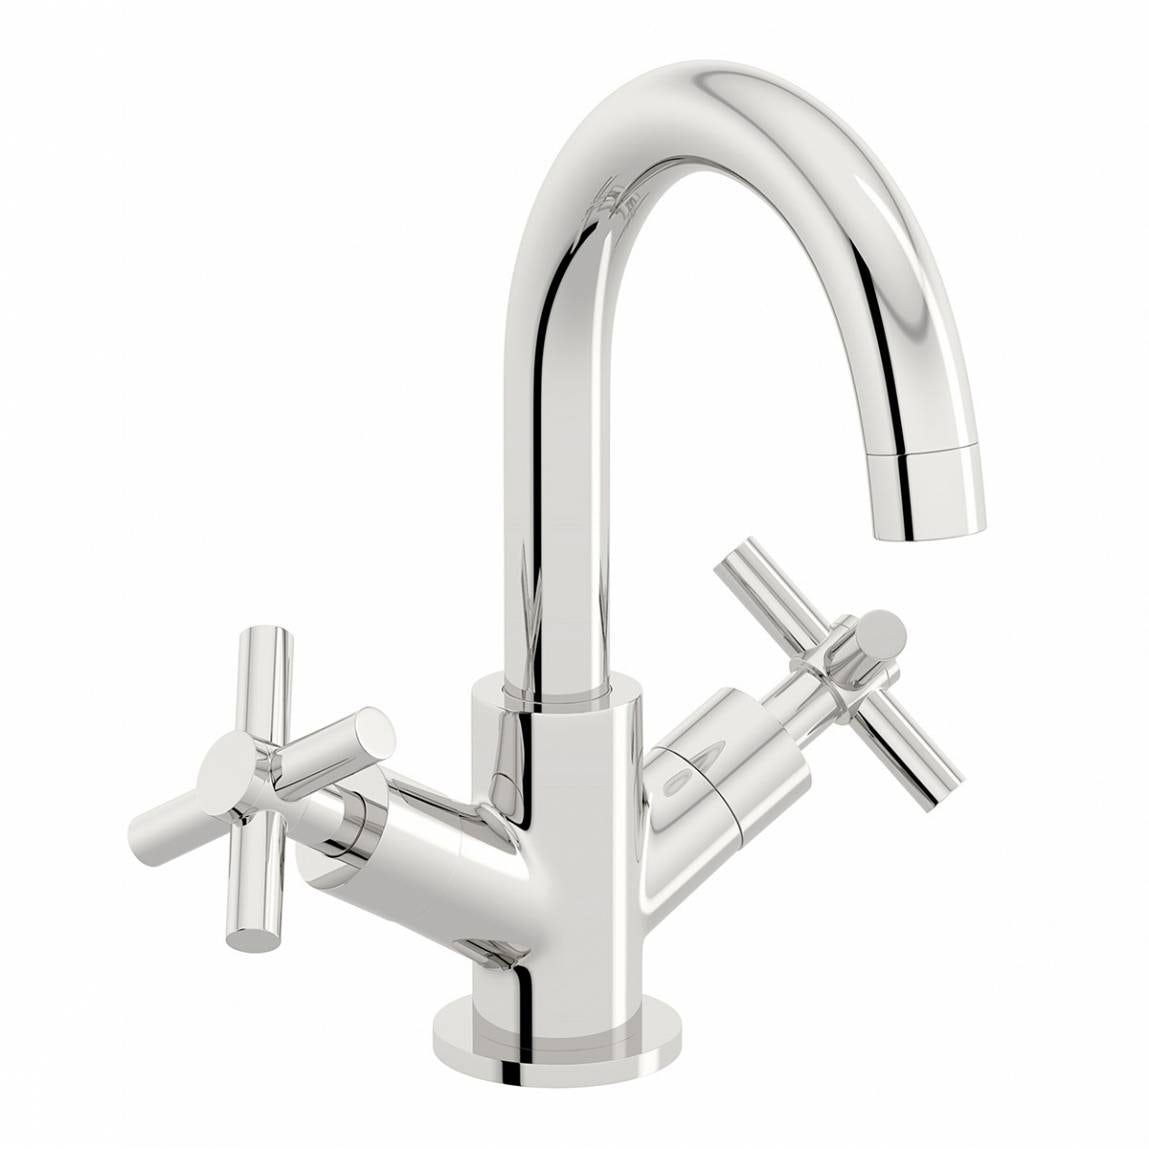 Mode Alexa basin mixer tap